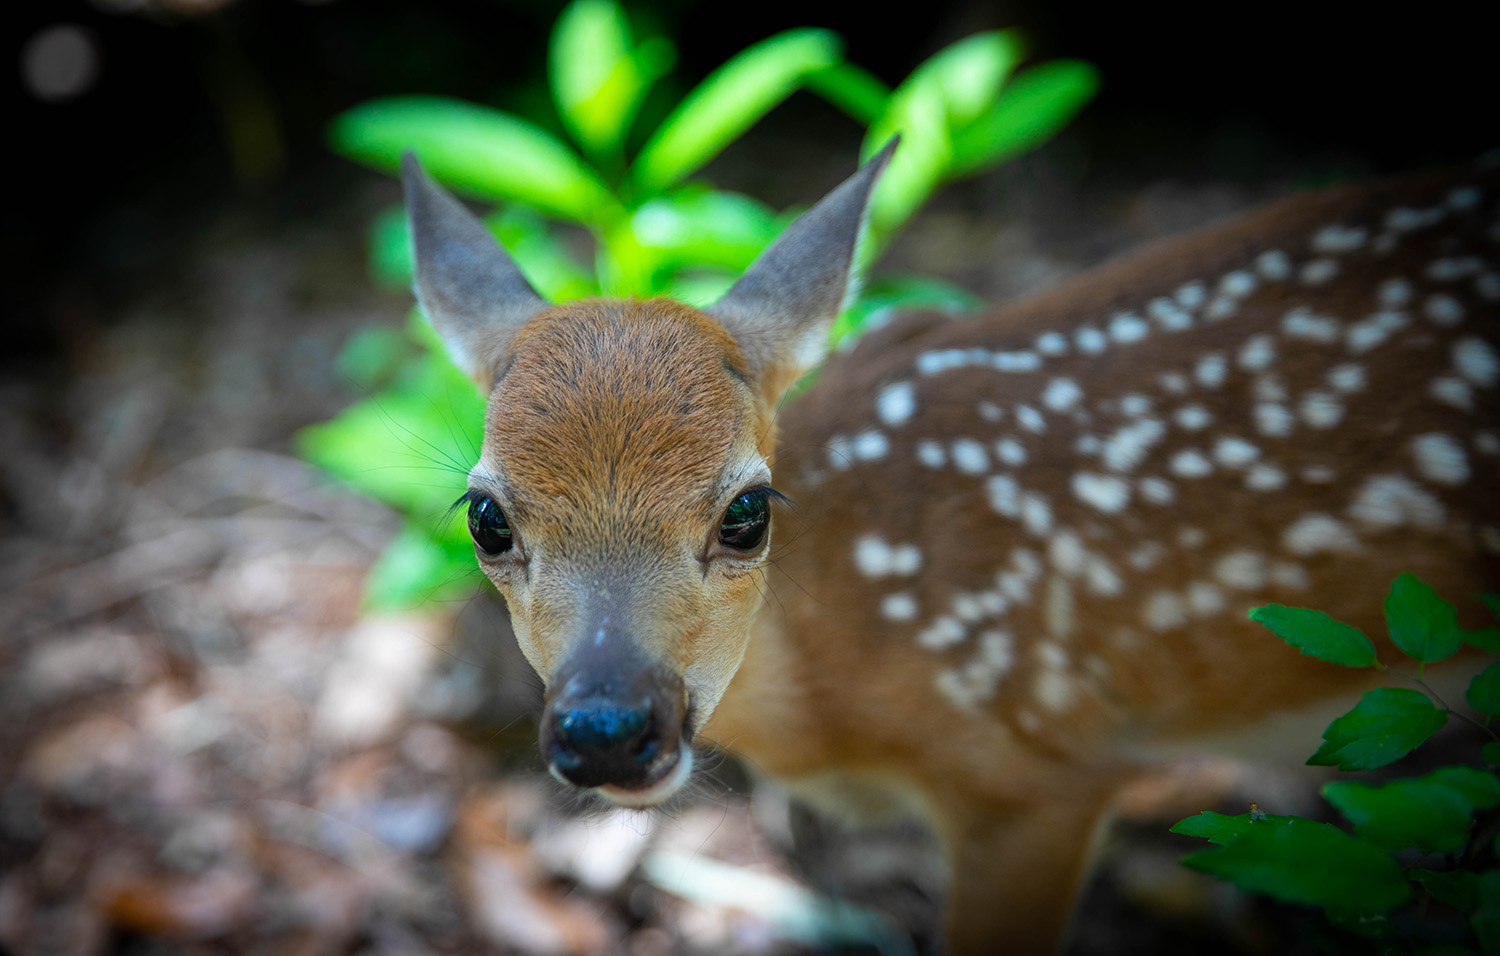 A Key Deer Fawn at the Santa Fe College Teaching Zoo on May 14, 2020 in Gainesville, Fla. (Matt Stamey/Santa Fe College )